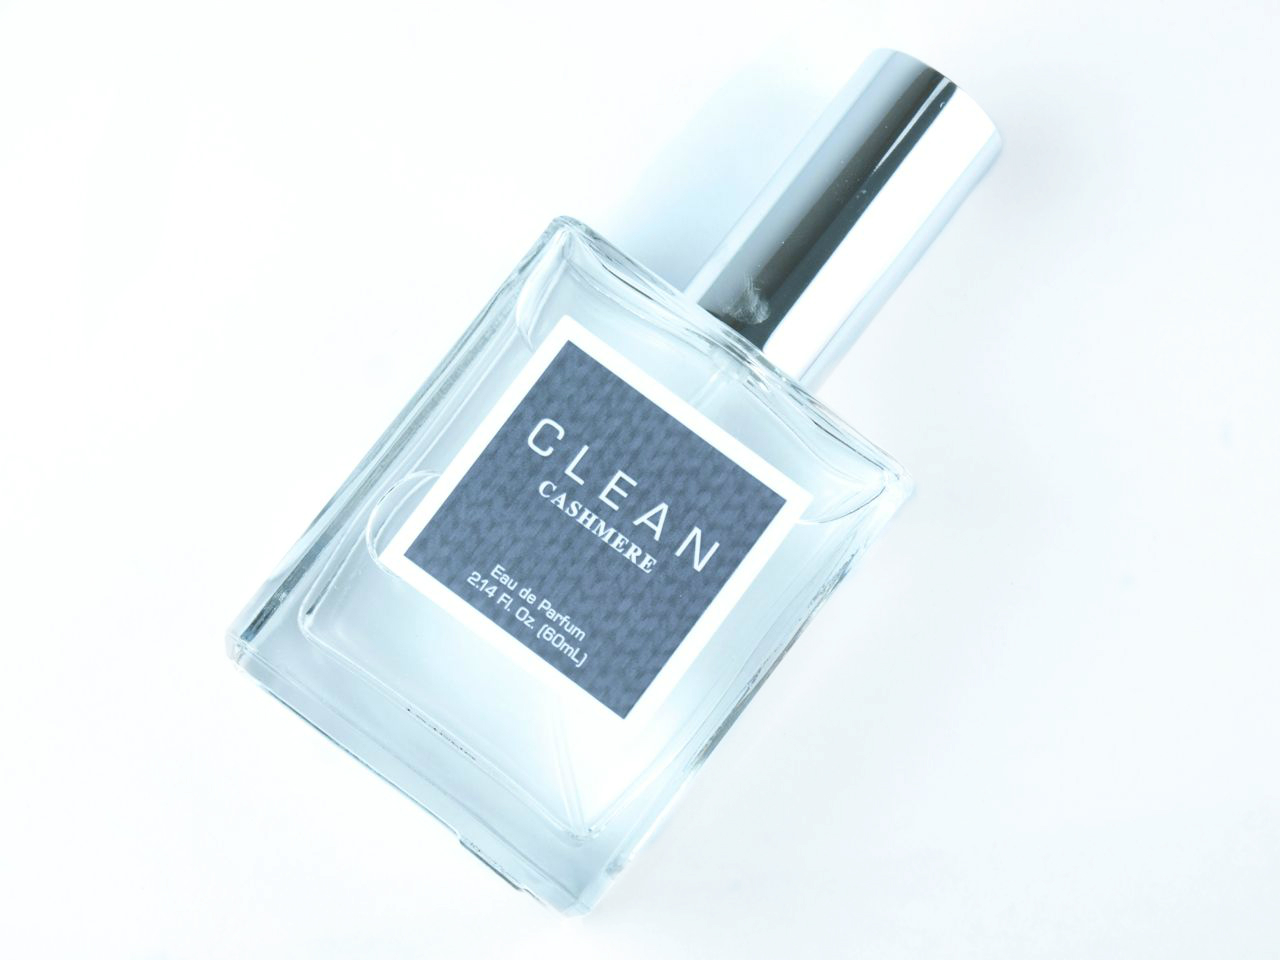 Clean Cashmere Eau de Parfum: Review